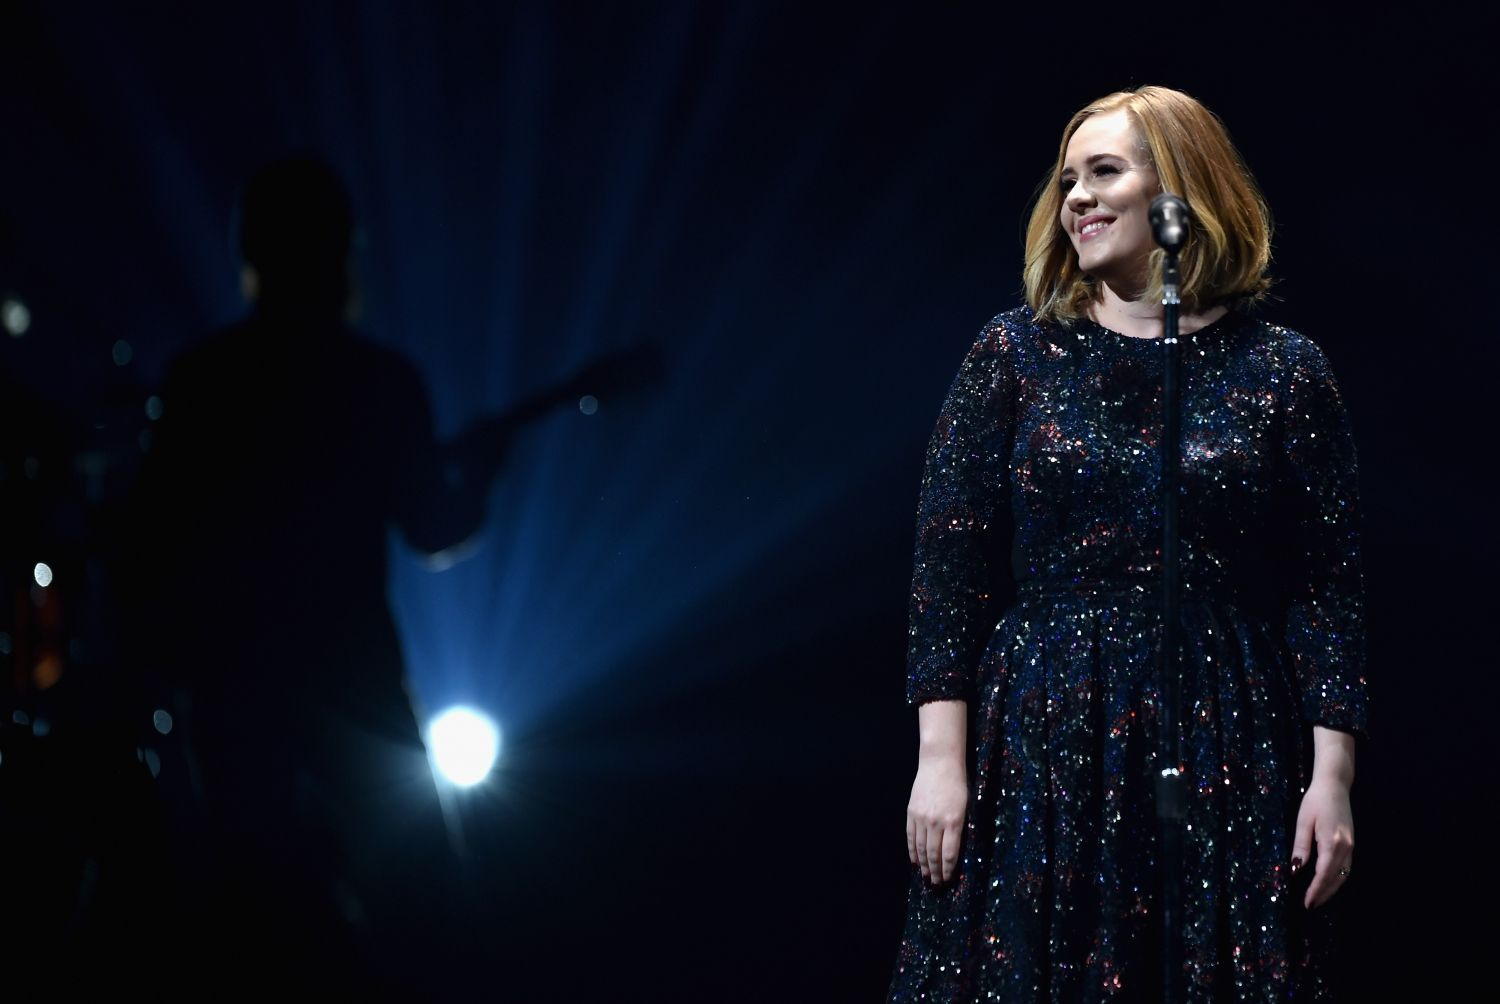 Adele wearing Burberry while performing at the SSE Arena in Belfast, 29 February 2016 (b)